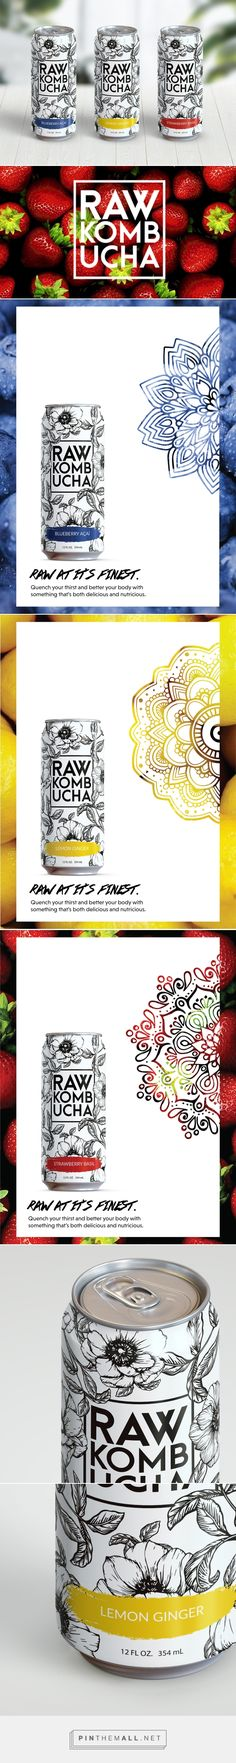 Raw Kombucha by Melanie Peterson. Source: Behance. Pin curated by #SFields99 #packaging #design #inspiration #ideas #branding #product #kombucha #drinks